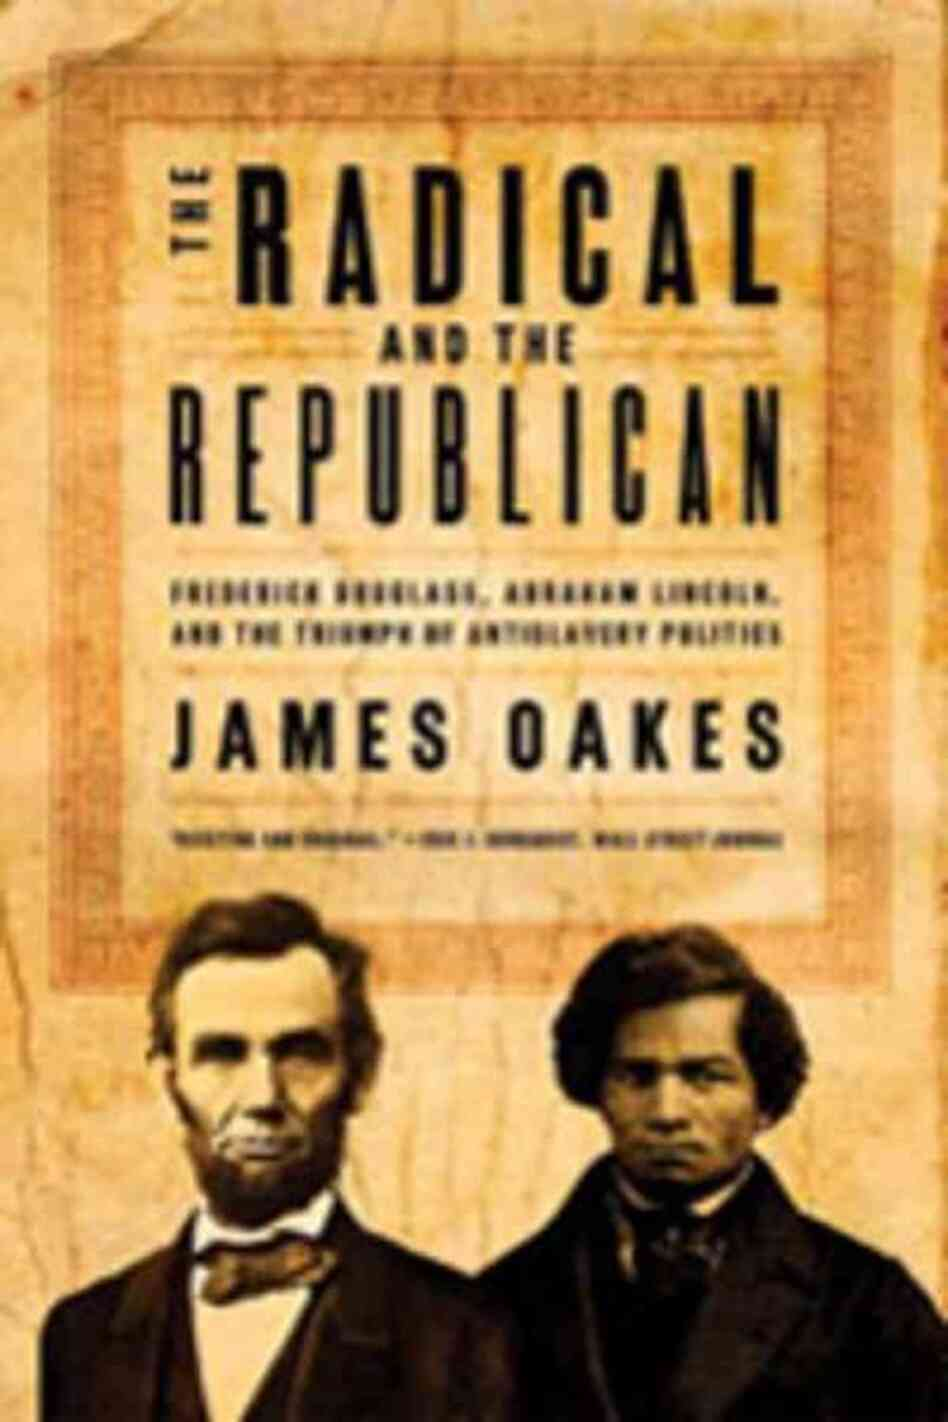 an overview of the life of frederick douglass the political activist The first was narrative of the life of frederick douglass,  see also, frederickson's review of the early history of racism [2002]),  of an activist community that demanded full social and political liberty, equality, and inclusion.